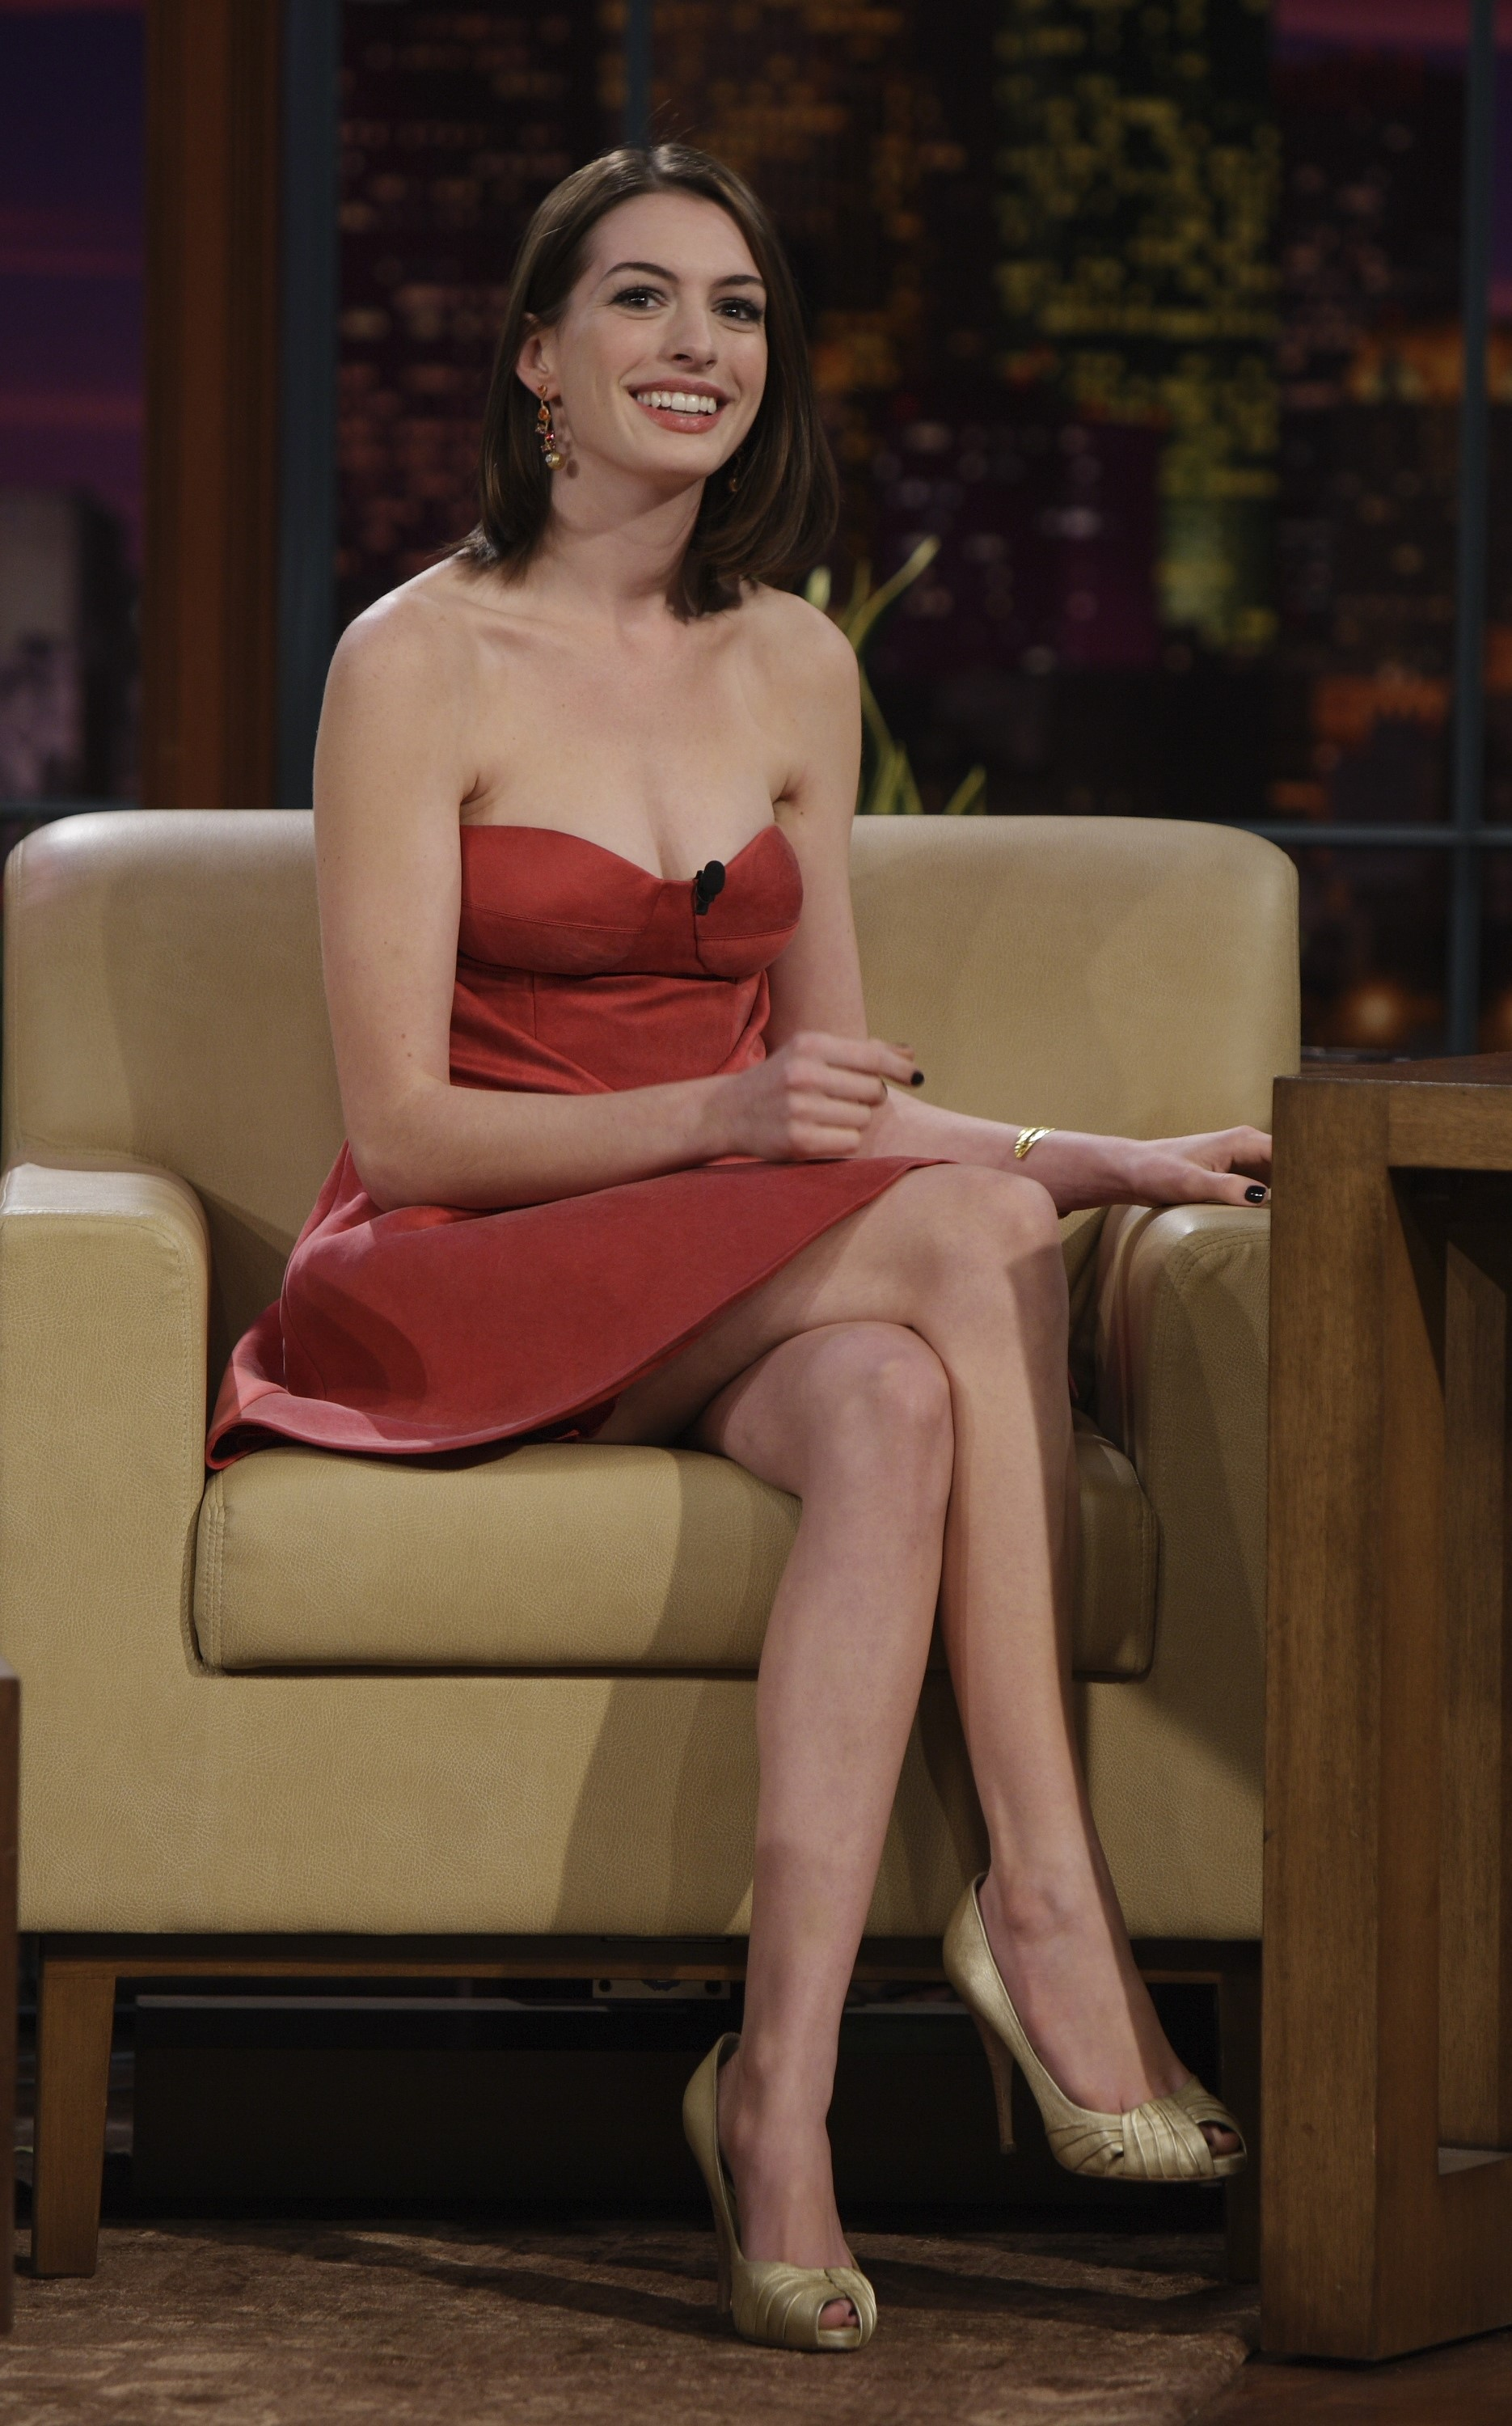 21979_celeb-city.org_Anne_Hathaway_The_Tonight_Show_06-16-2008_09_123_463lo.jpg